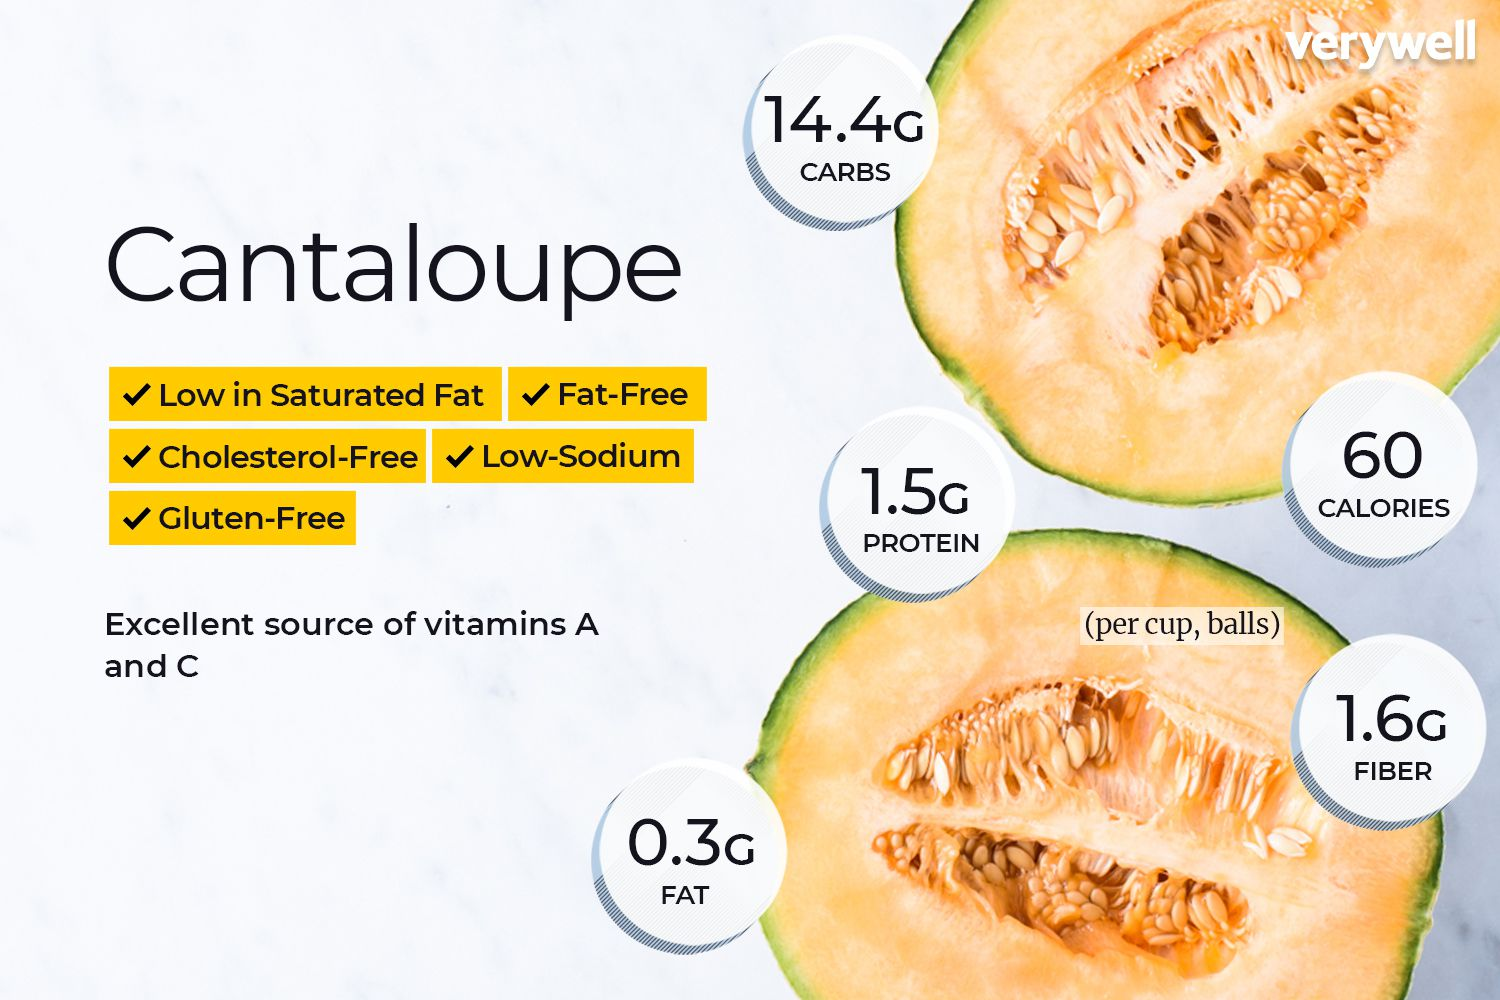 Cantaloupe Nutrition Facts And Health Benefits It is important to note that even the best things in life can become bad in immoderate amounts. cantaloupe nutrition facts and health